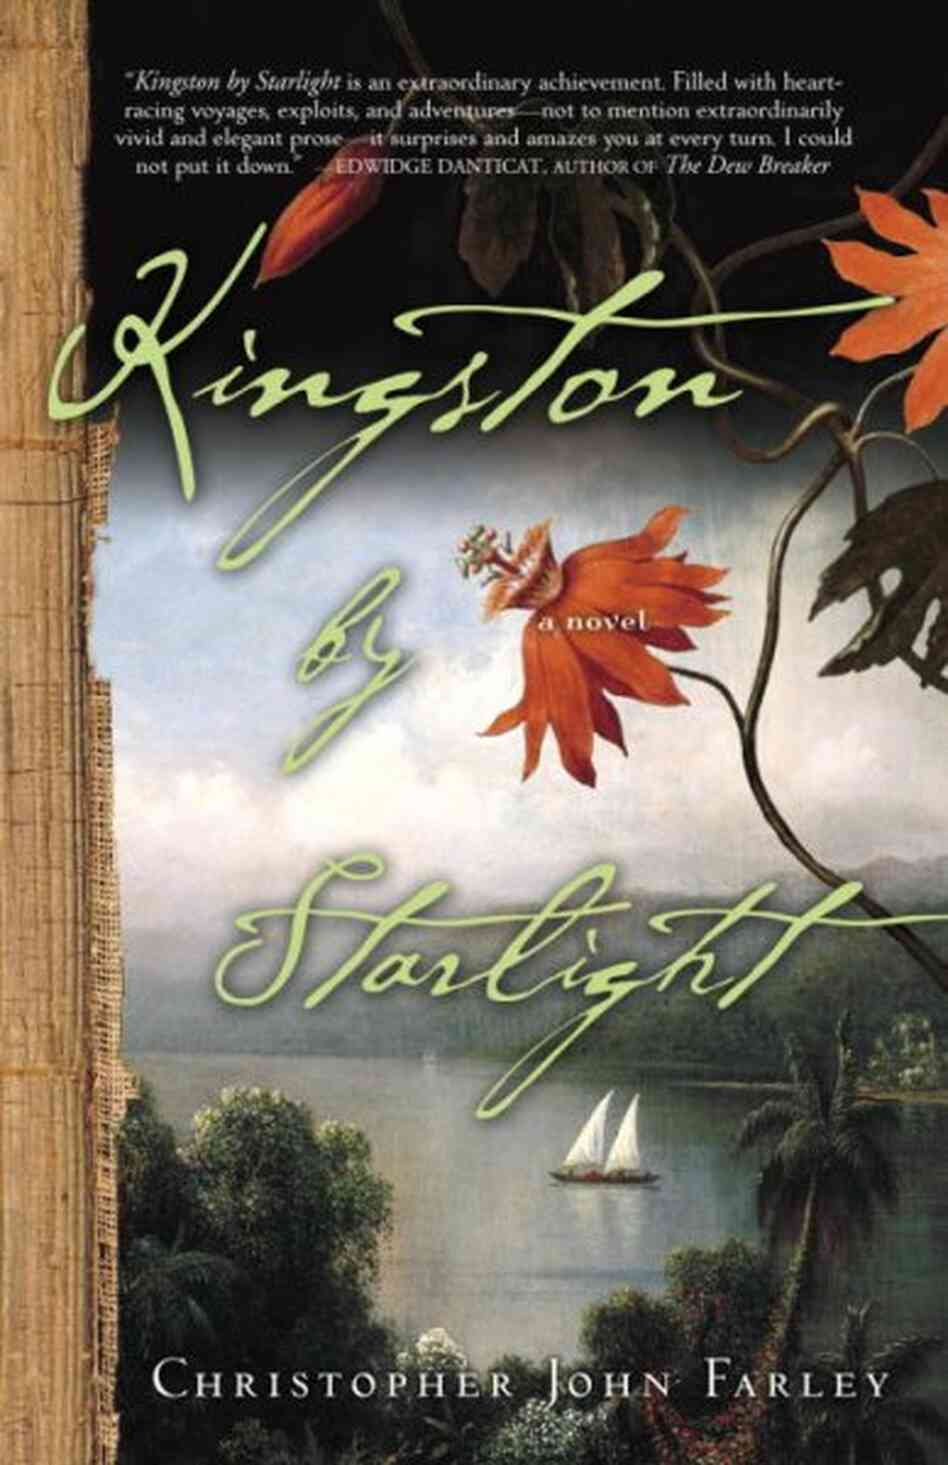 Kingston By Starlight